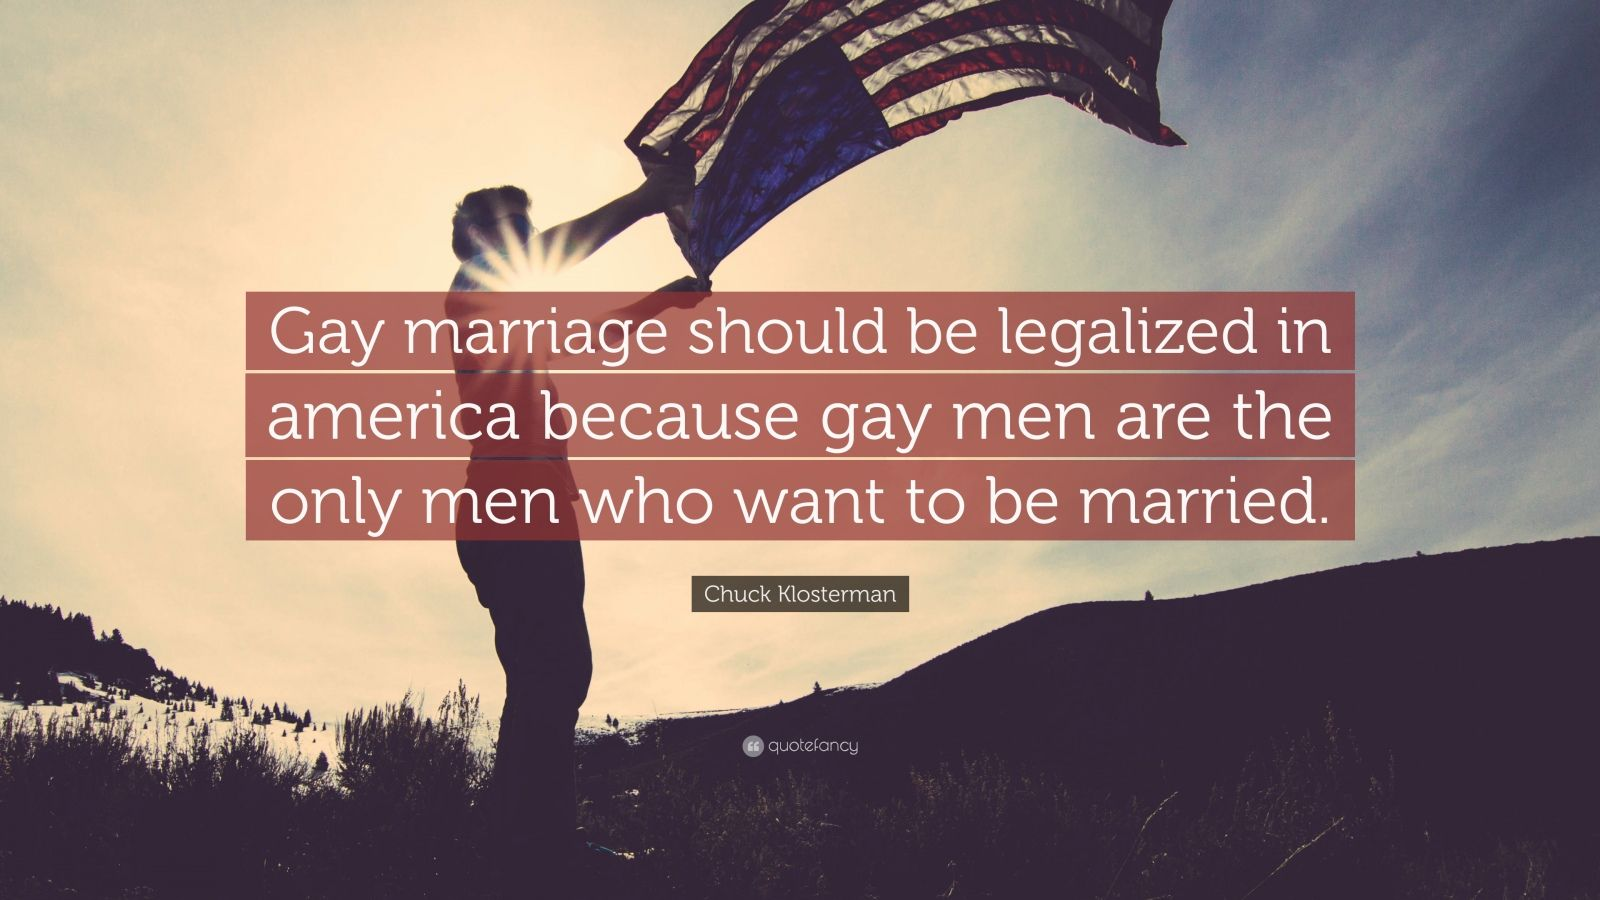 gay marriages should be legalized